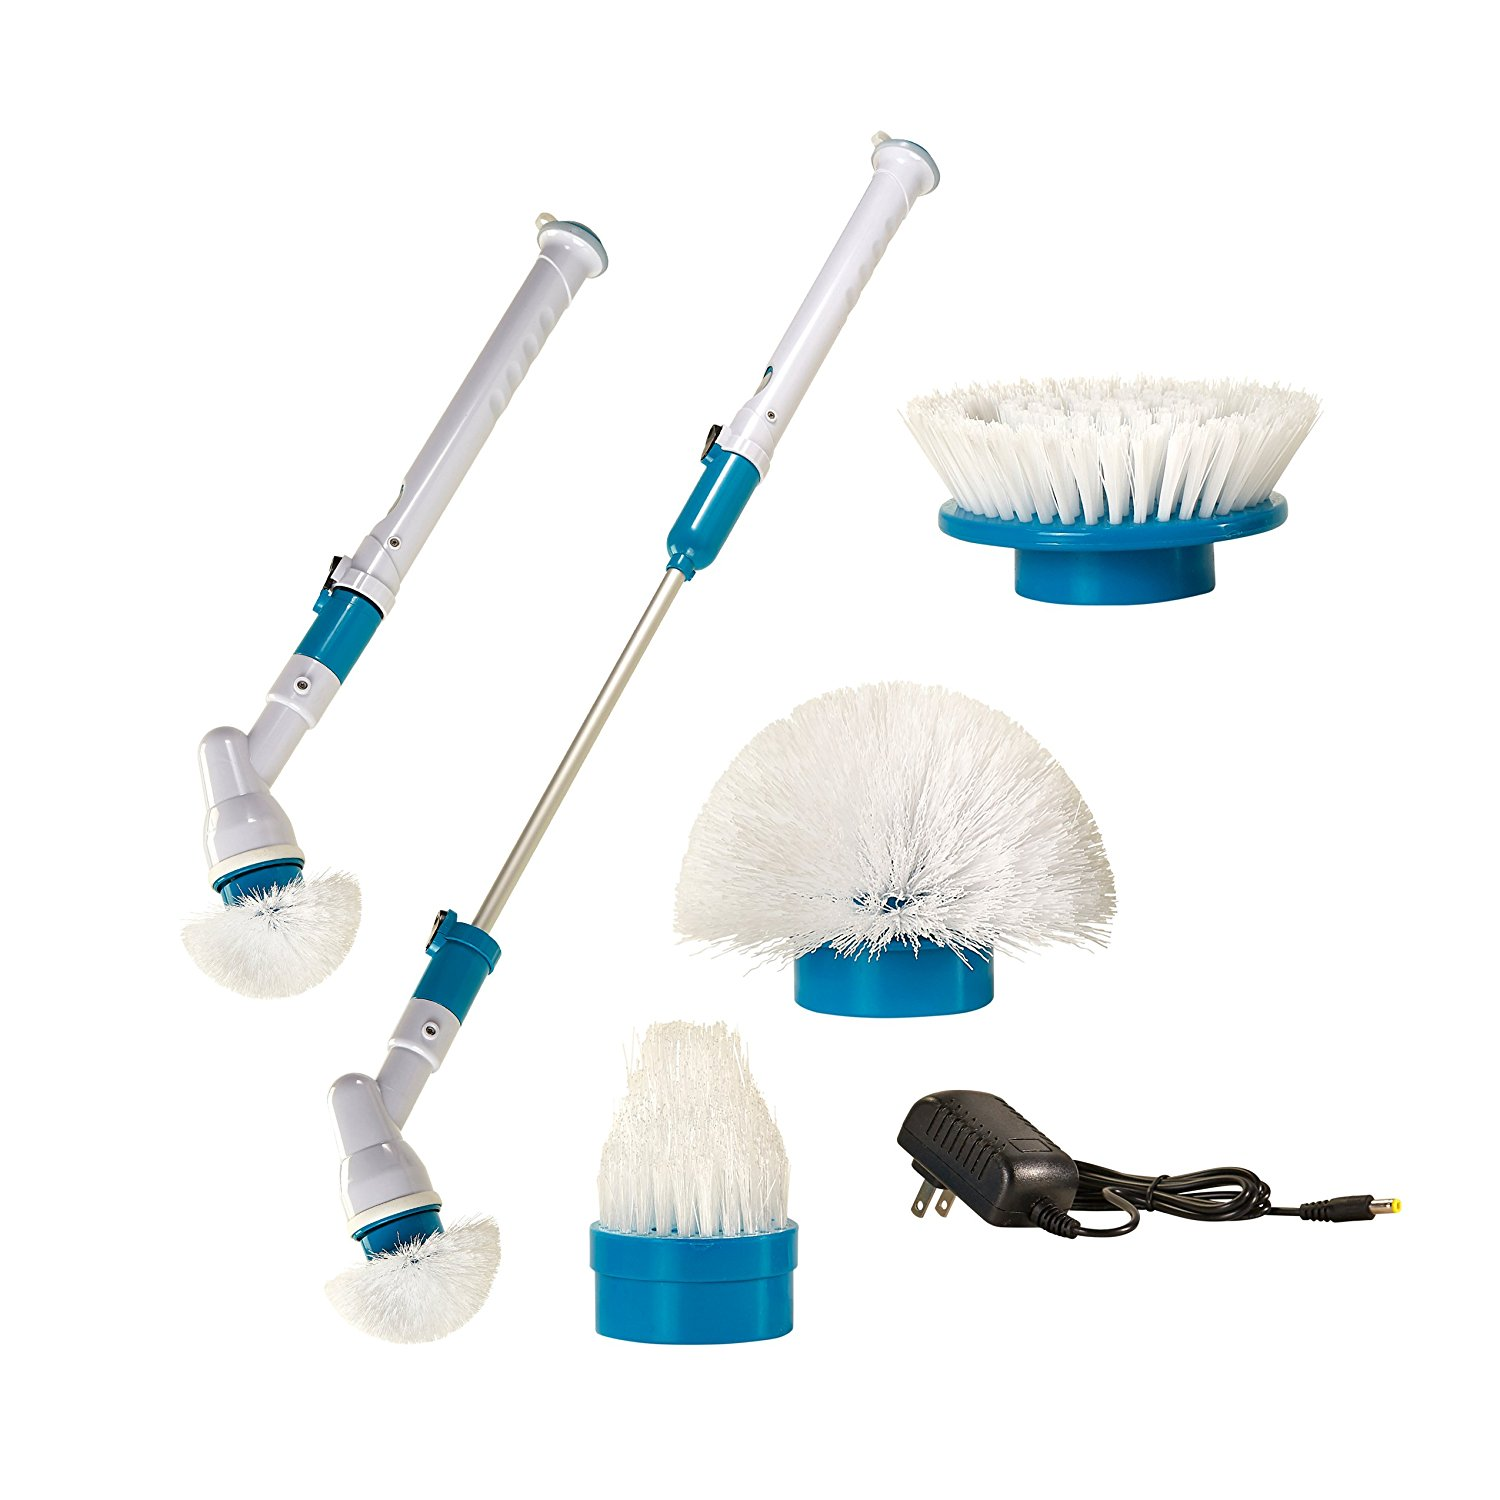 Power Spin Scrubber: Electric, Rechargeable, Cordless Turbo Scrubber - With Extension Handle, Adapter, Charger, 3 Brush Heads - For Multi-Purpose Uses Bathroom/Floor/Wall/Kitchen/Tile